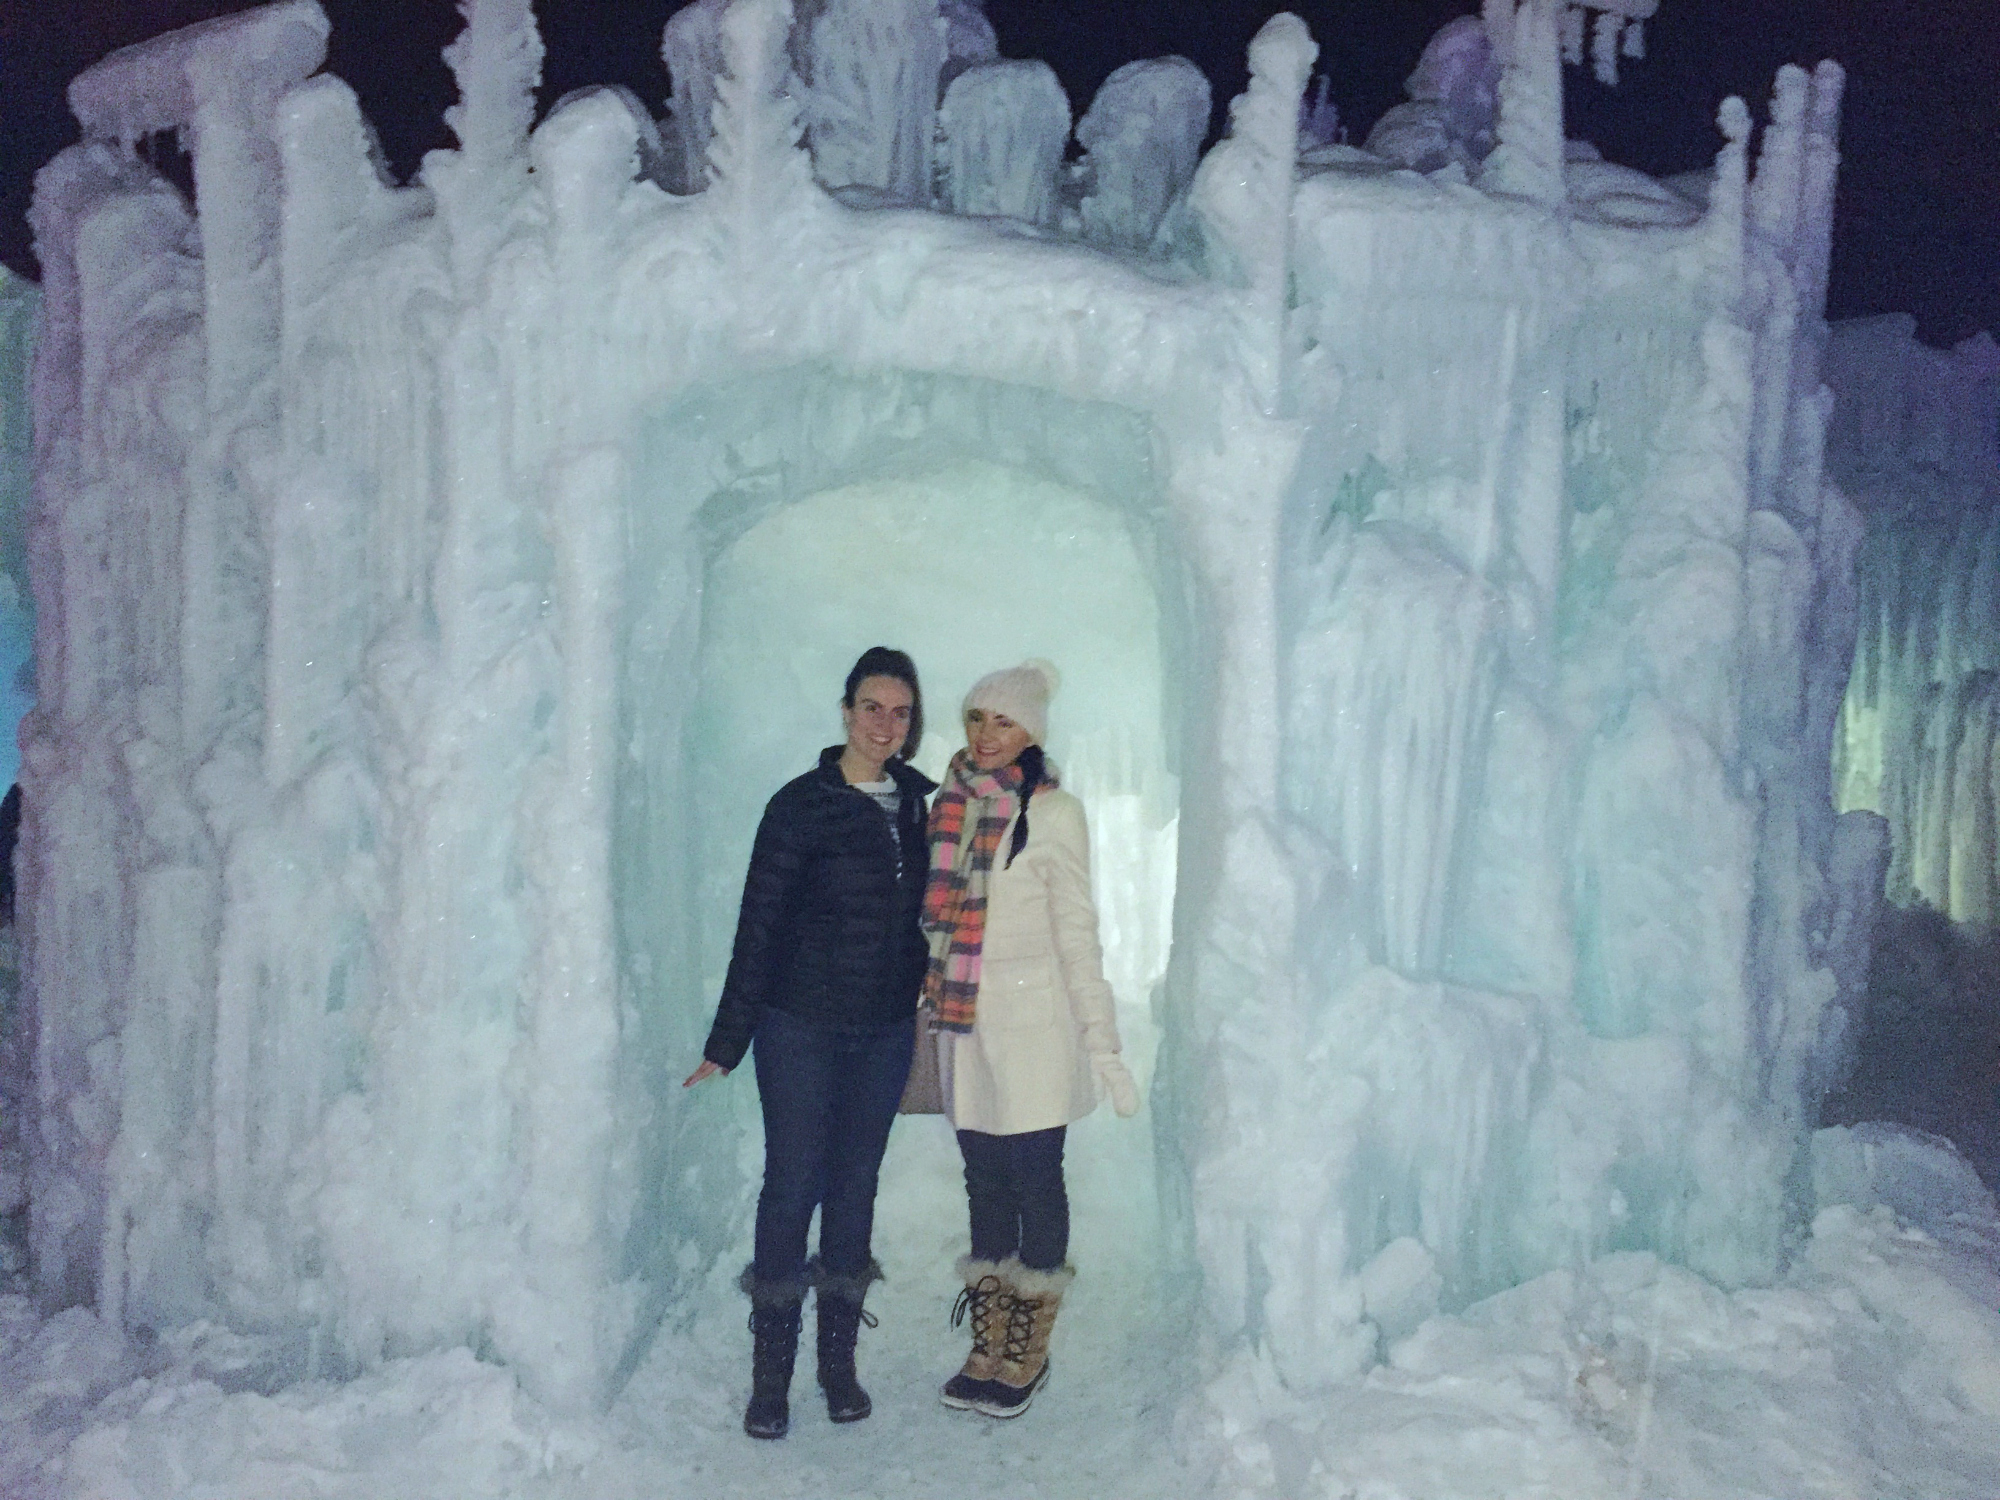 Elsa and anna at the midway ice castles